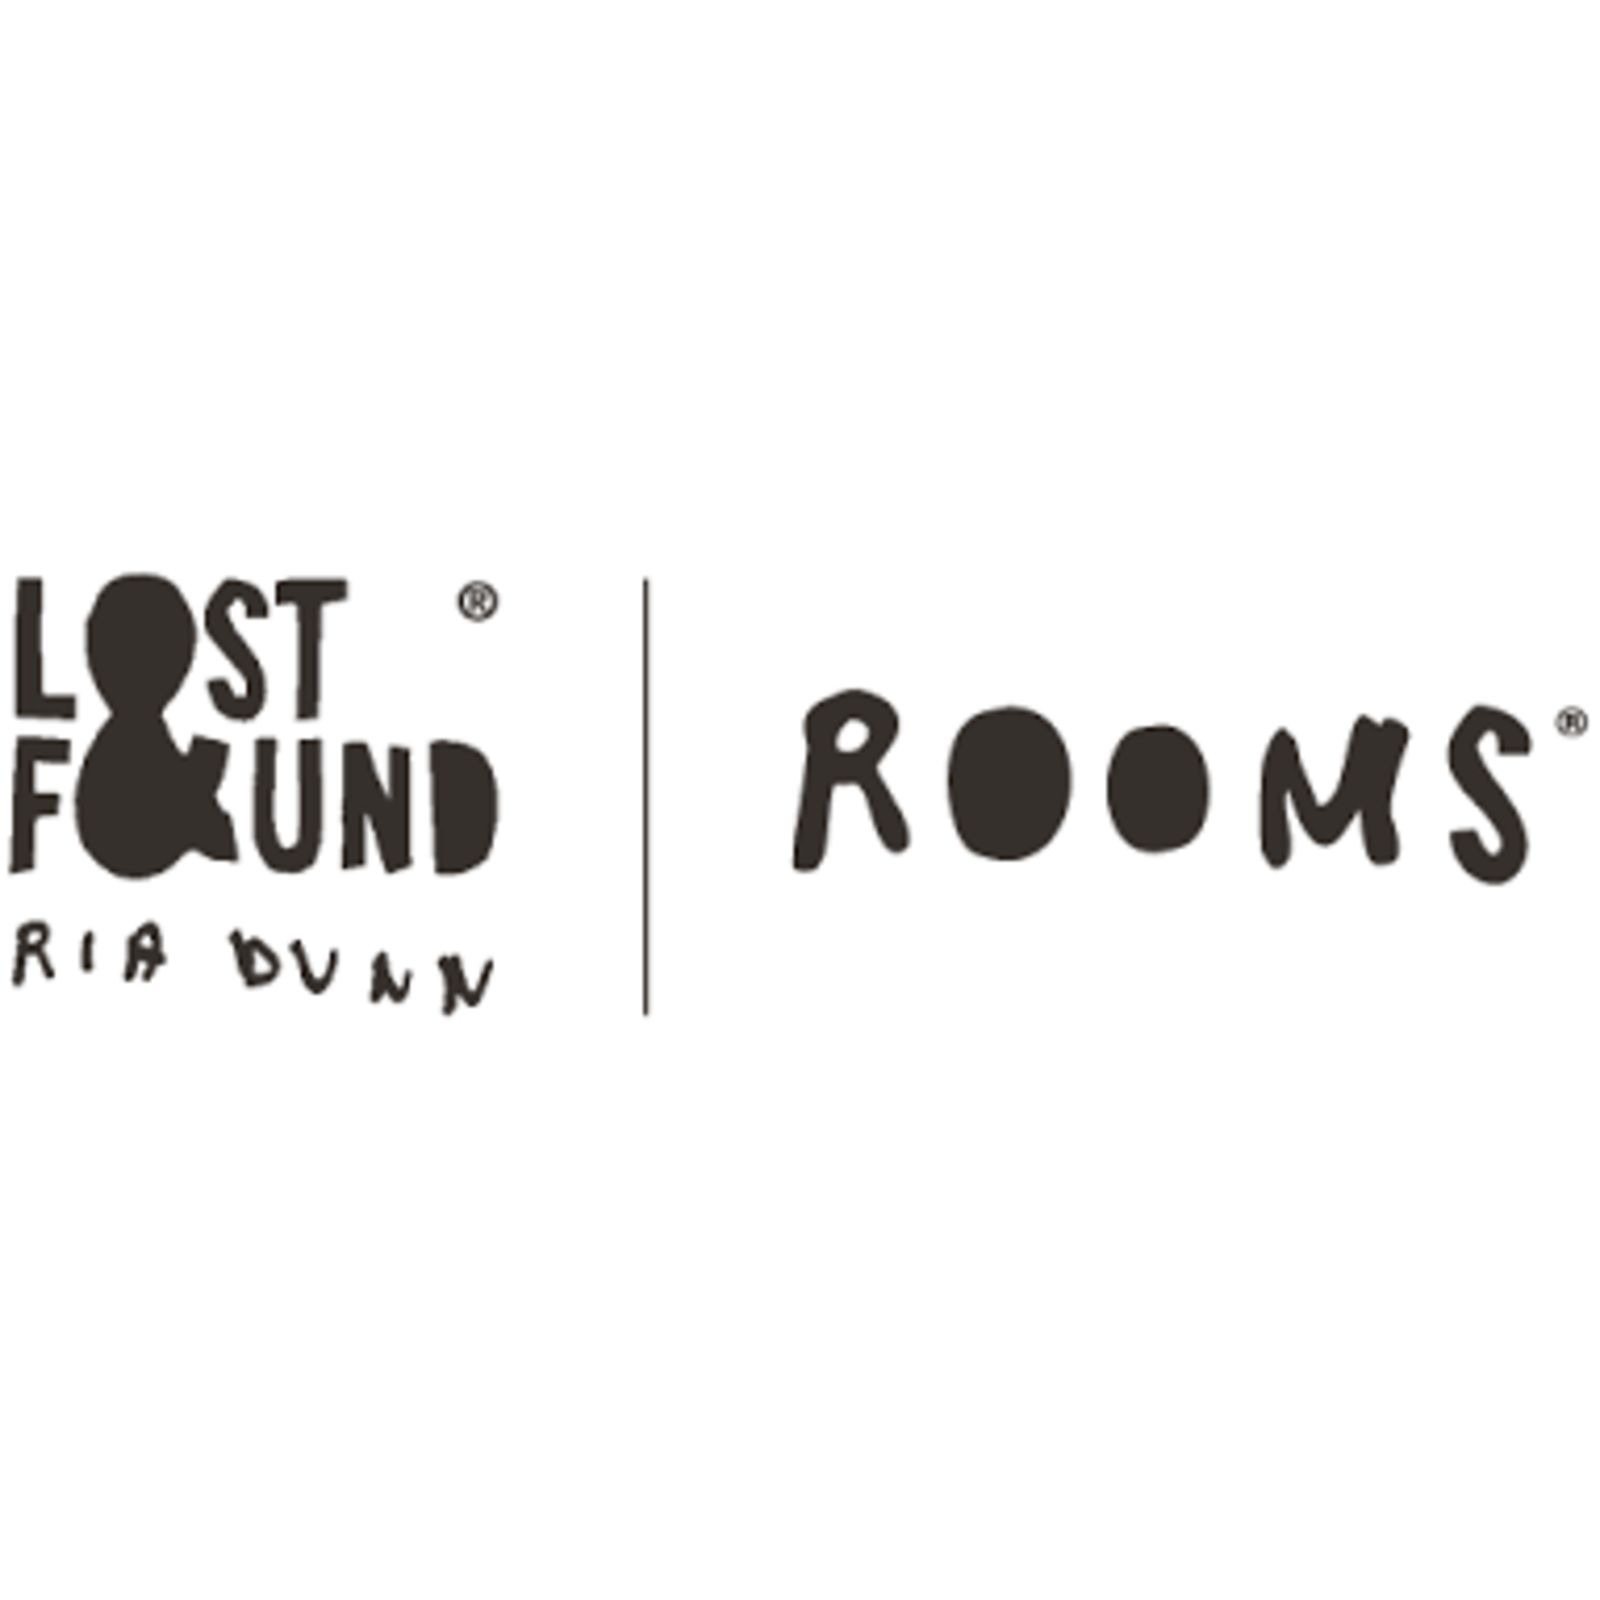 LOST & FOUND ROOMS